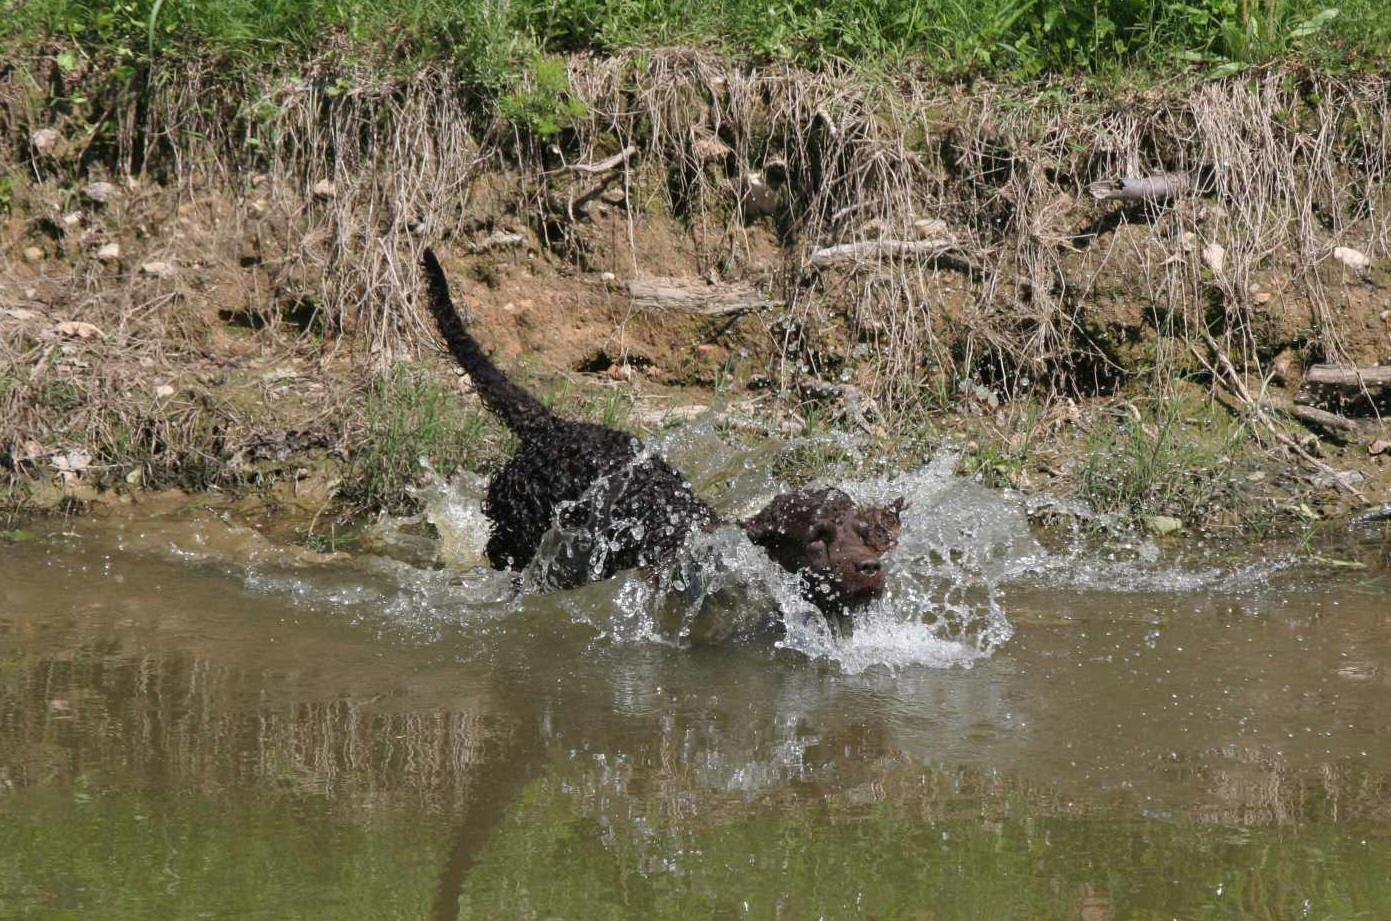 American Water Spaniel in the water wallpaper